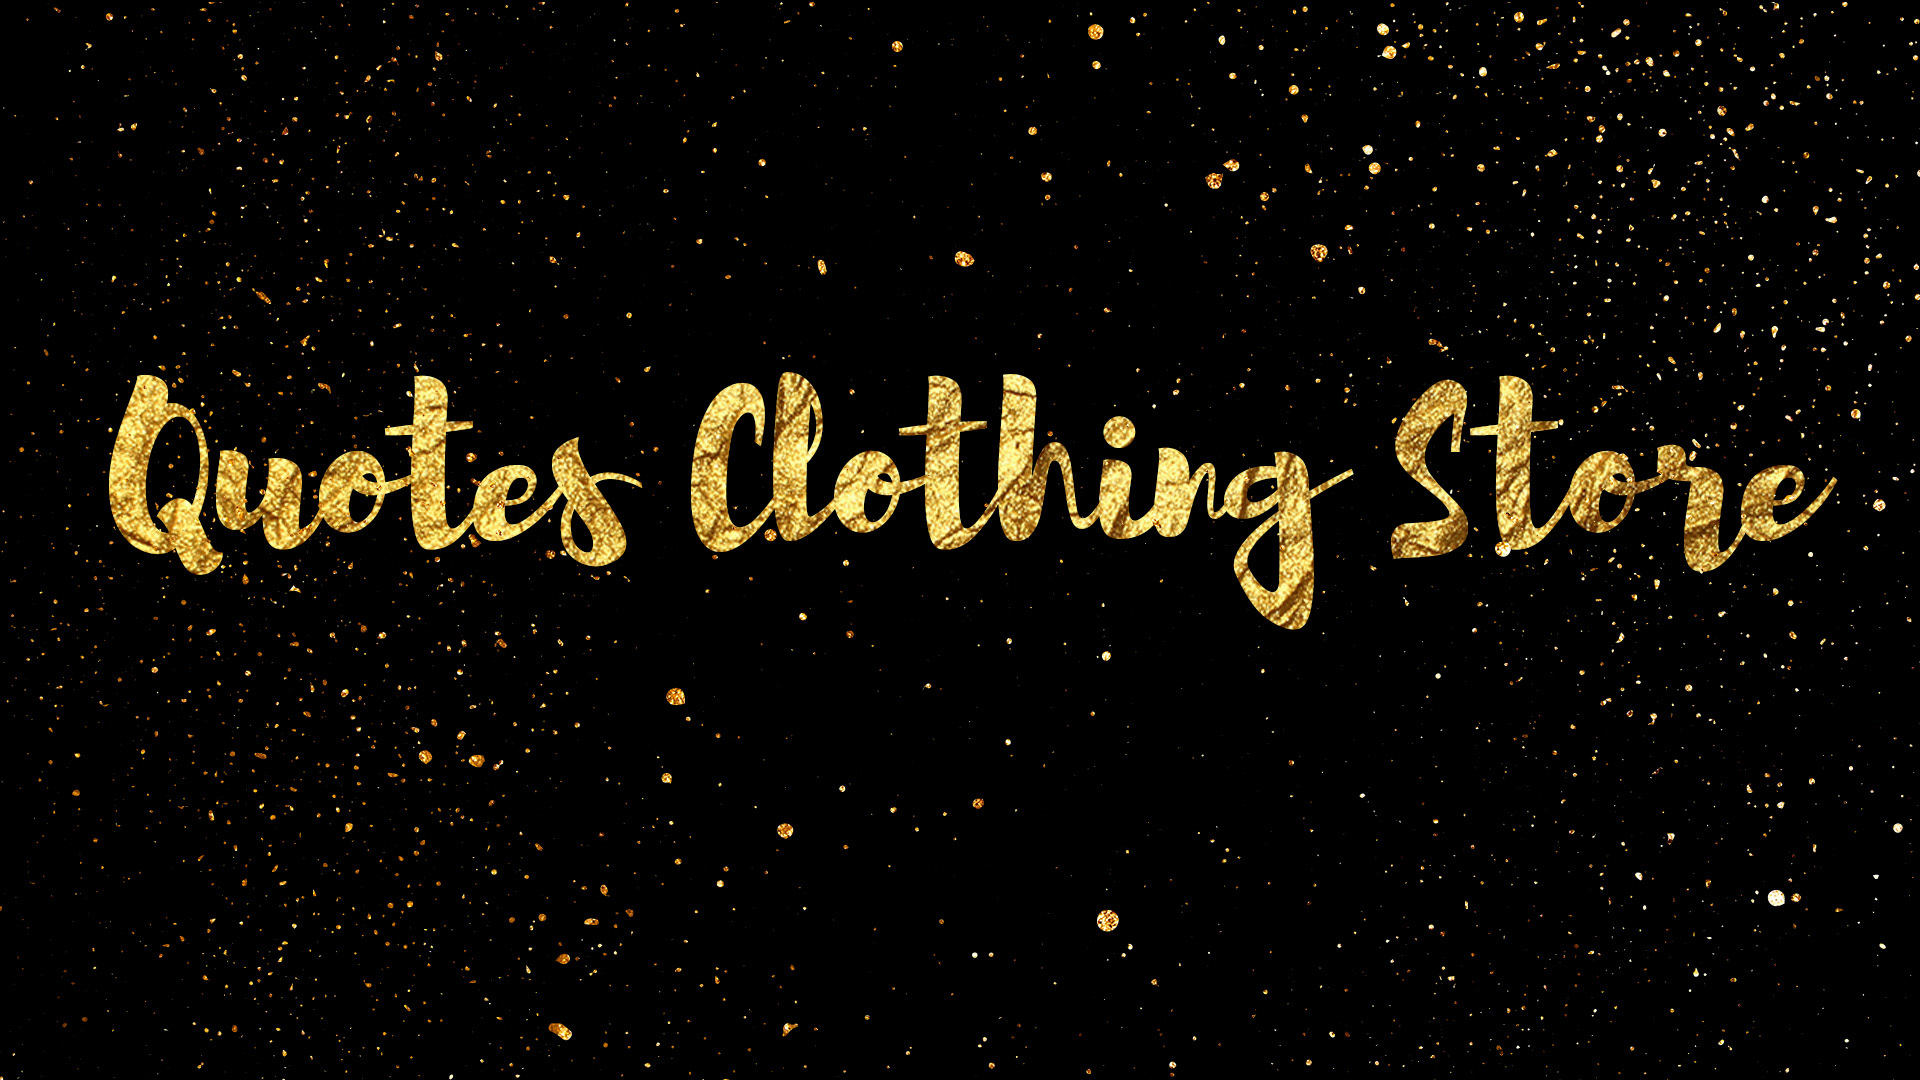 Quotes Clothing Store Store